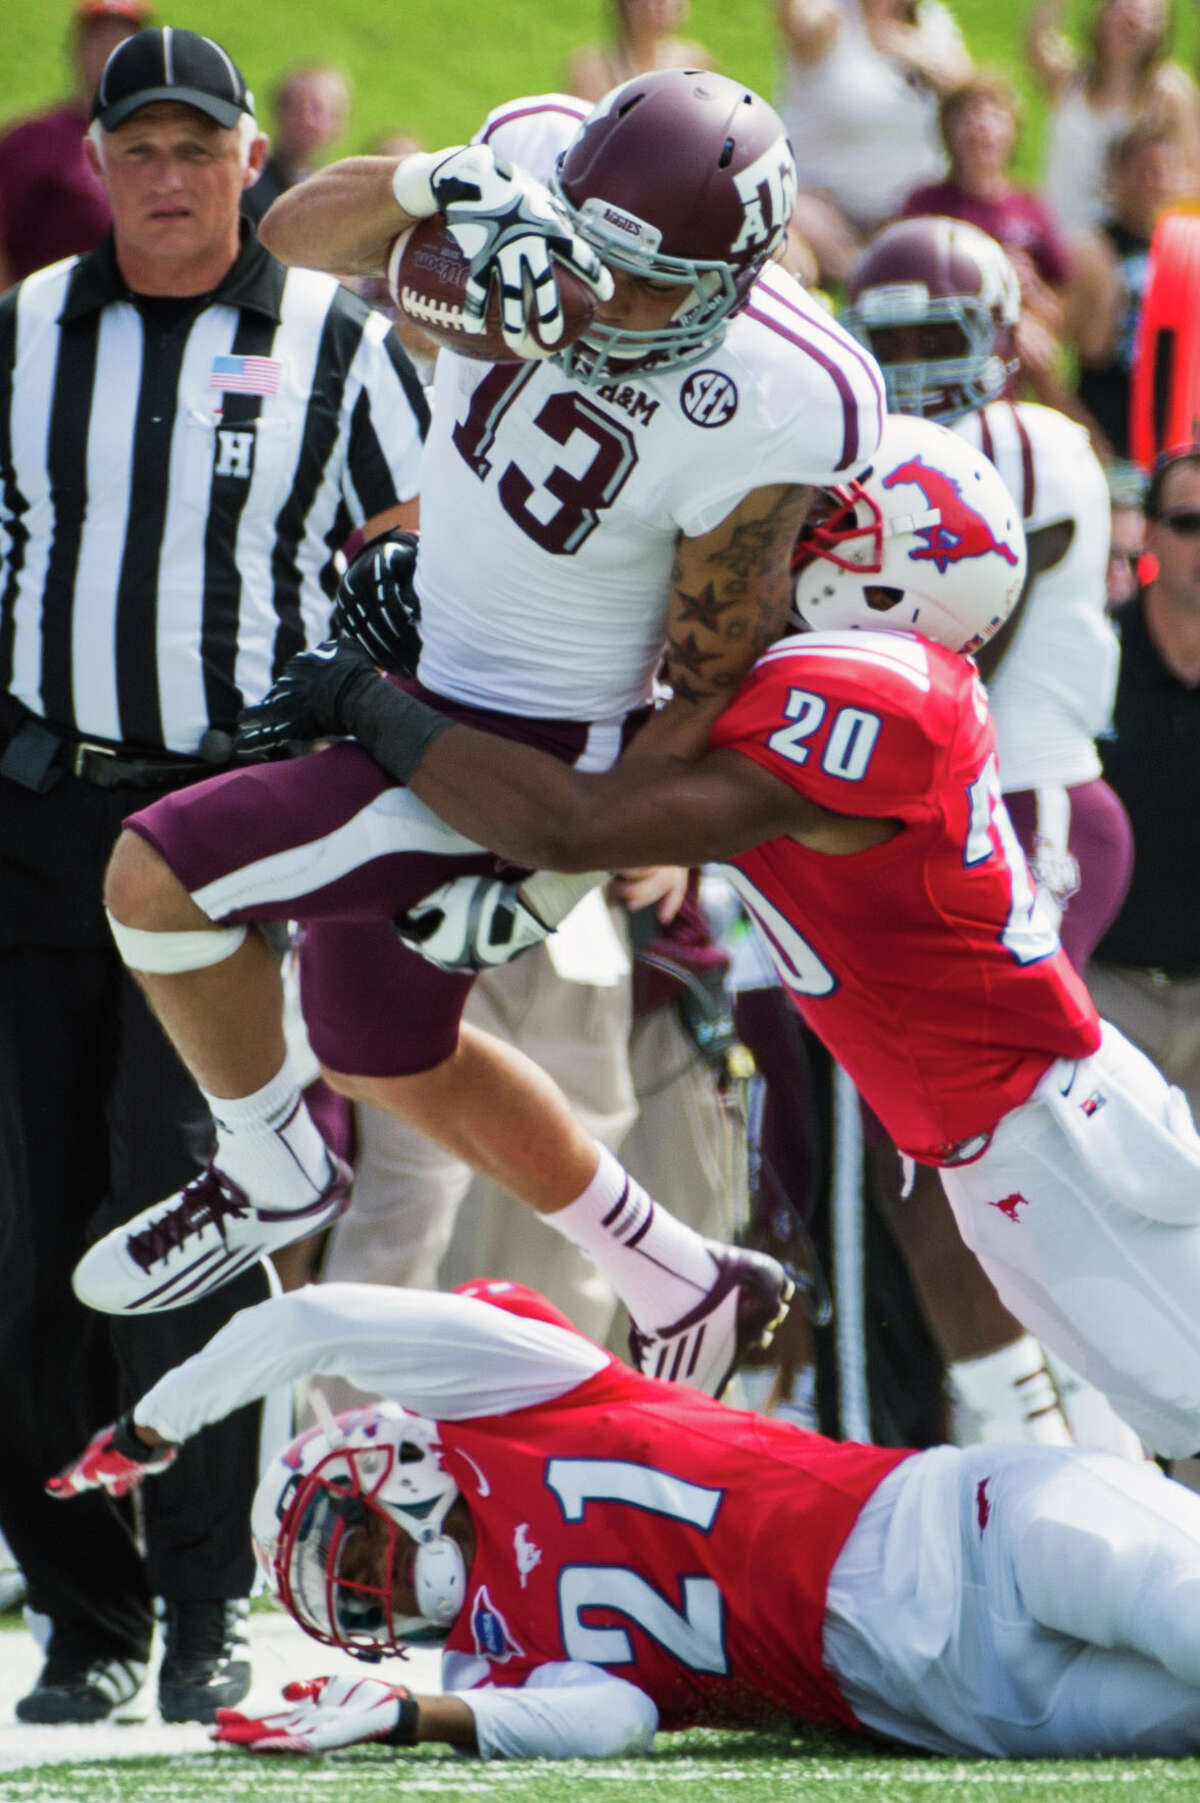 Texas A&M wide receiver Mike Evans, in action against SMU in last Saturday's 48-3 victory, leads the Aggies through two games with 13 receptions and 183 yards.